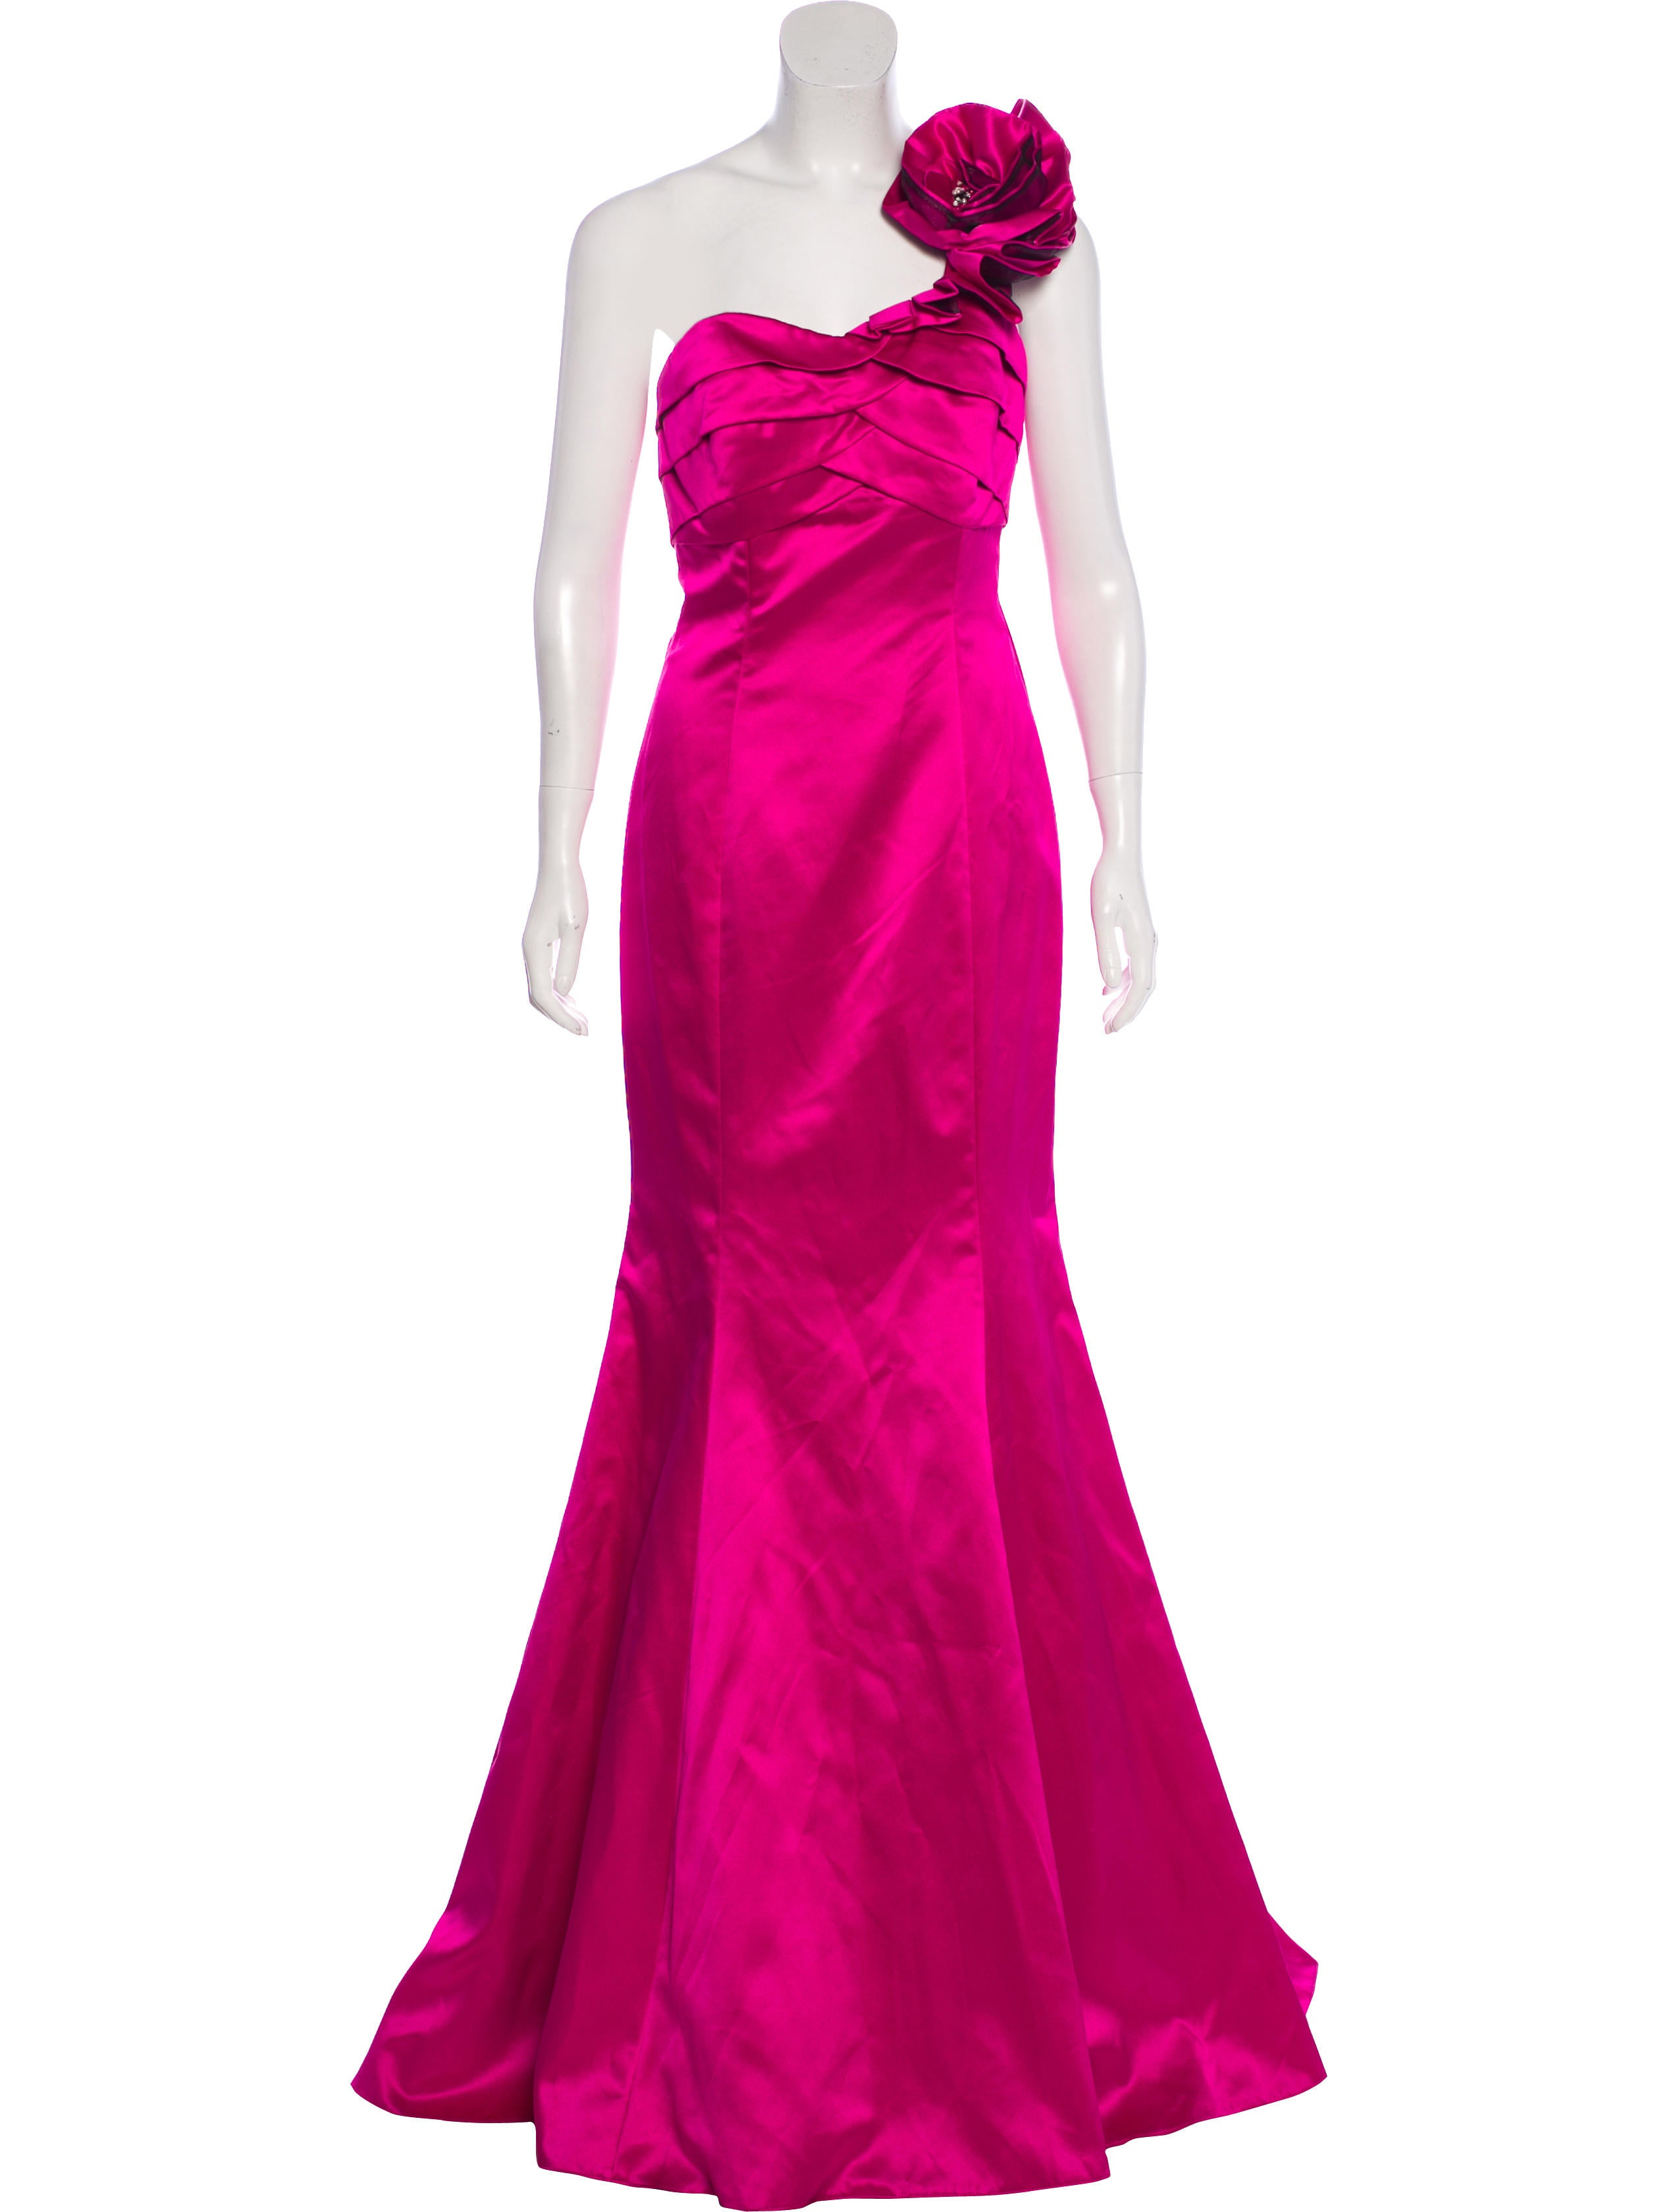 Jovani One-Shoulder Evening Gown - Clothing - WJOVI20603   The RealReal